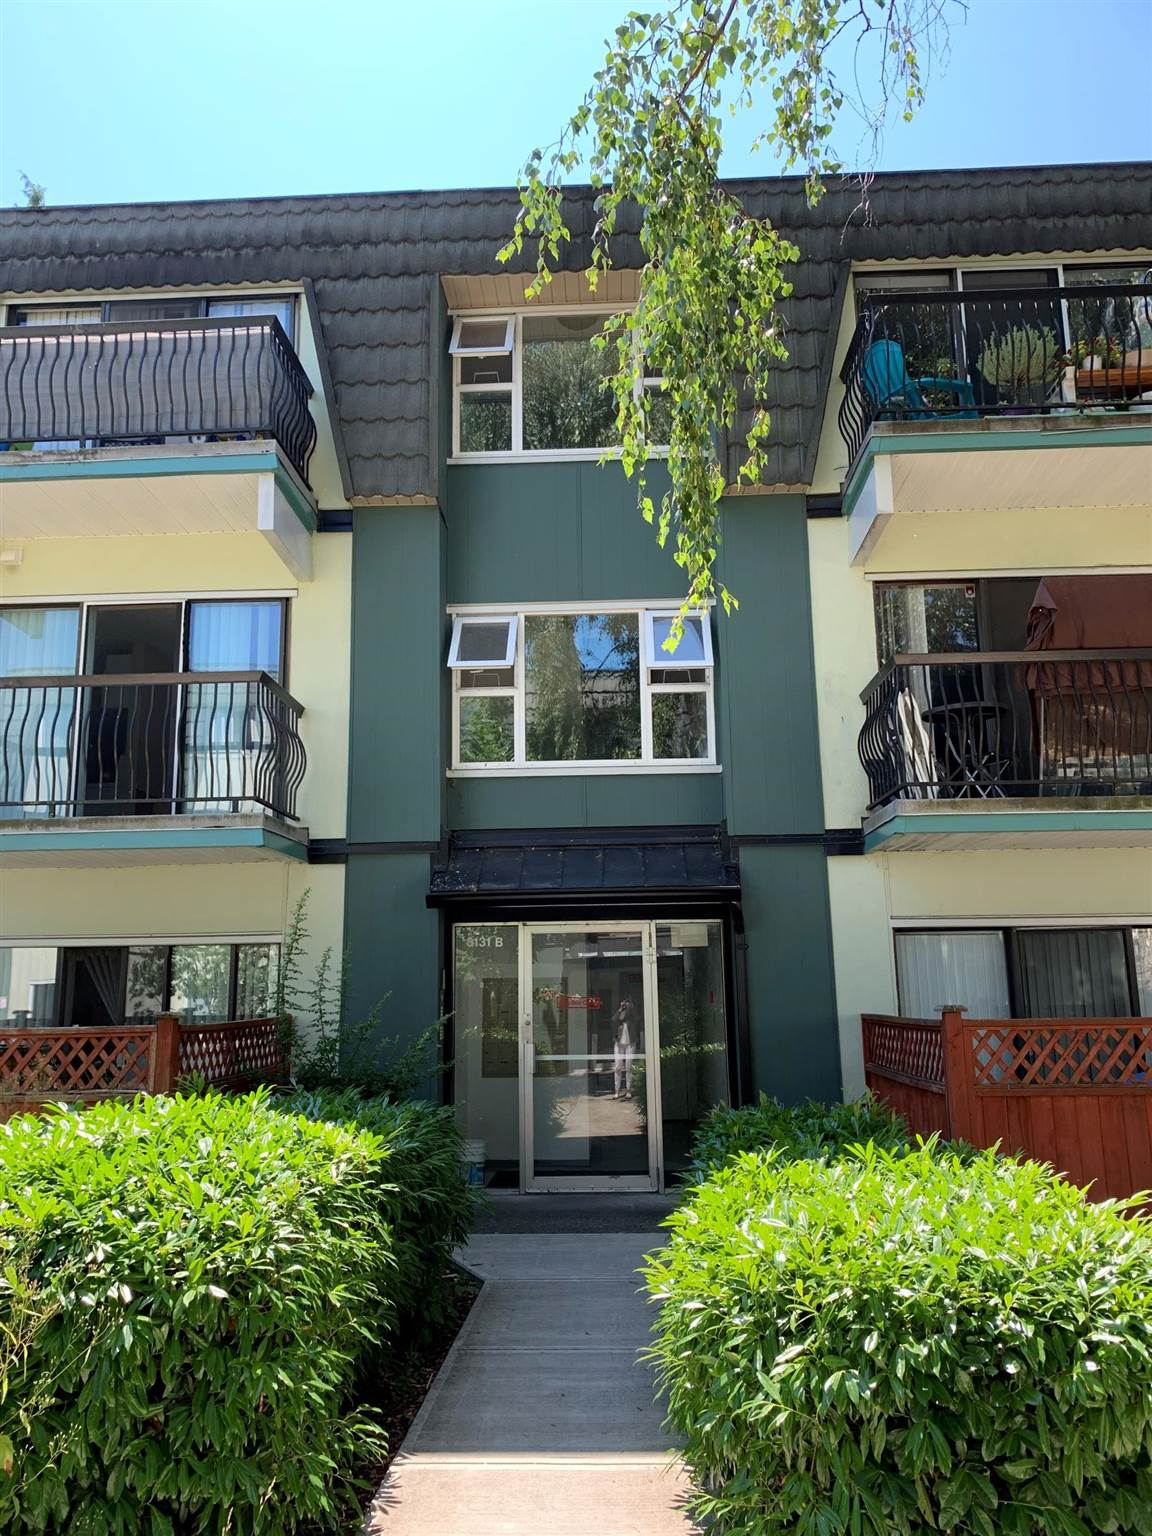 163 8151 RYAN ROAD - South Arm Apartment/Condo for sale, 2 Bedrooms (R2601385)